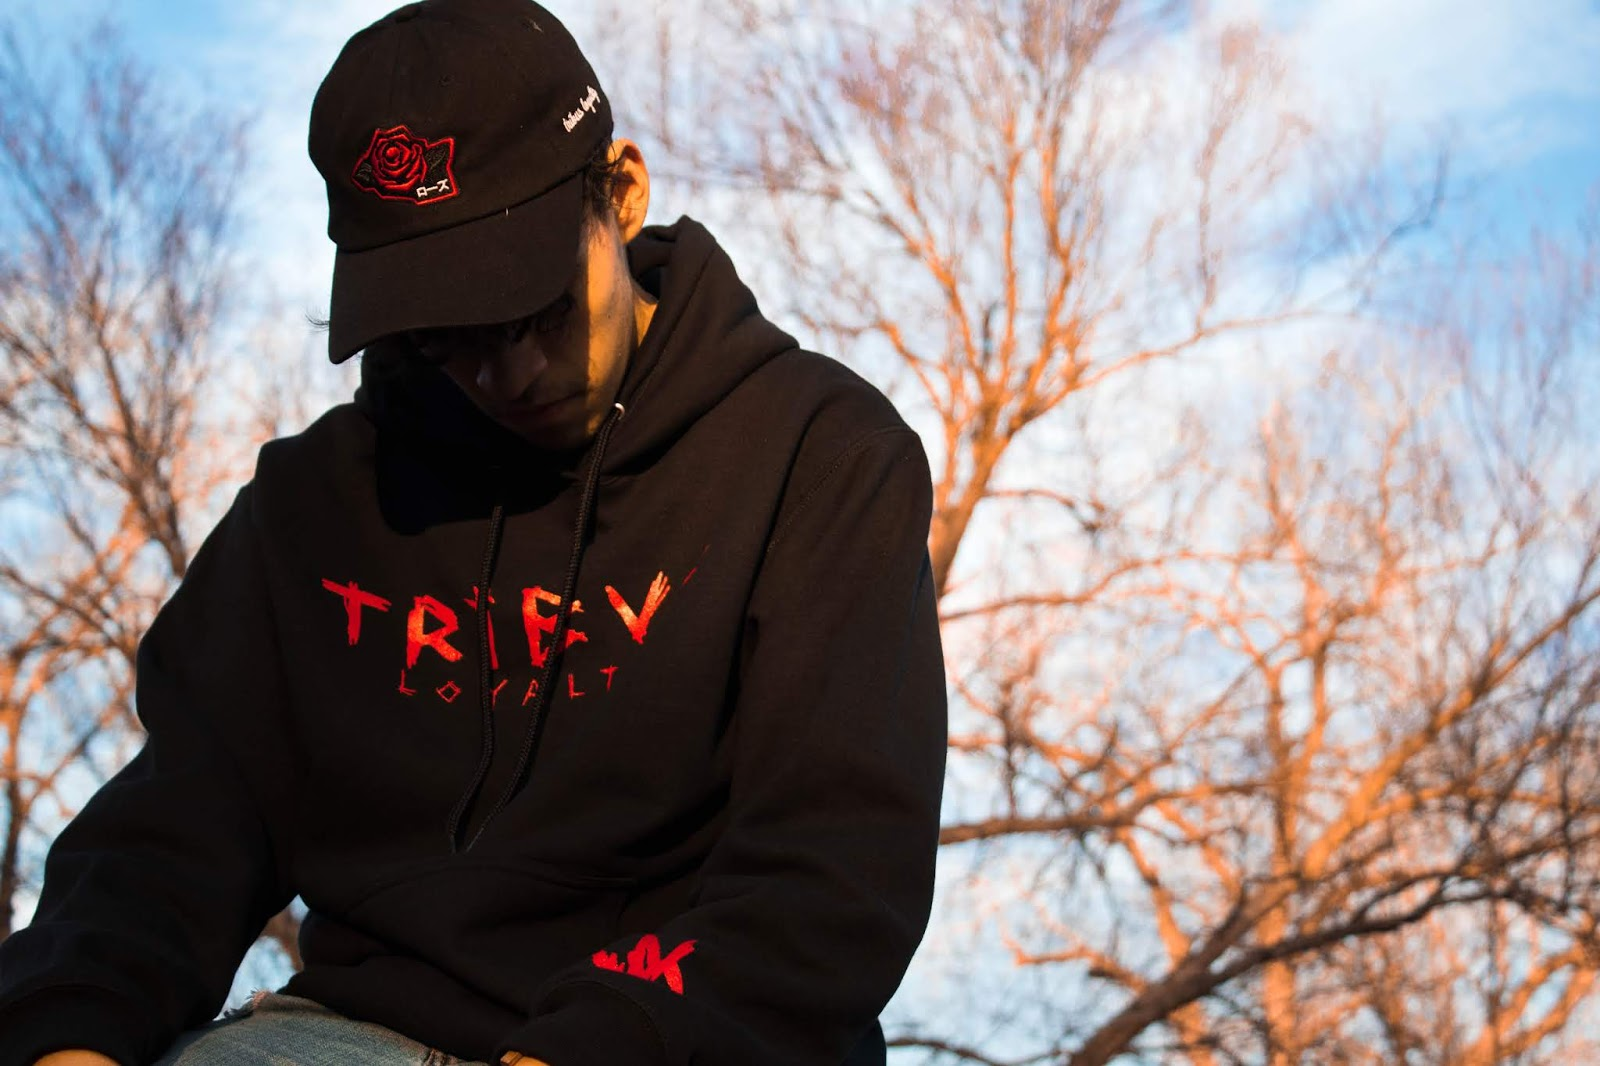 Interview: Tribus Loyalty, a clothing brand that invites you to be passionate.